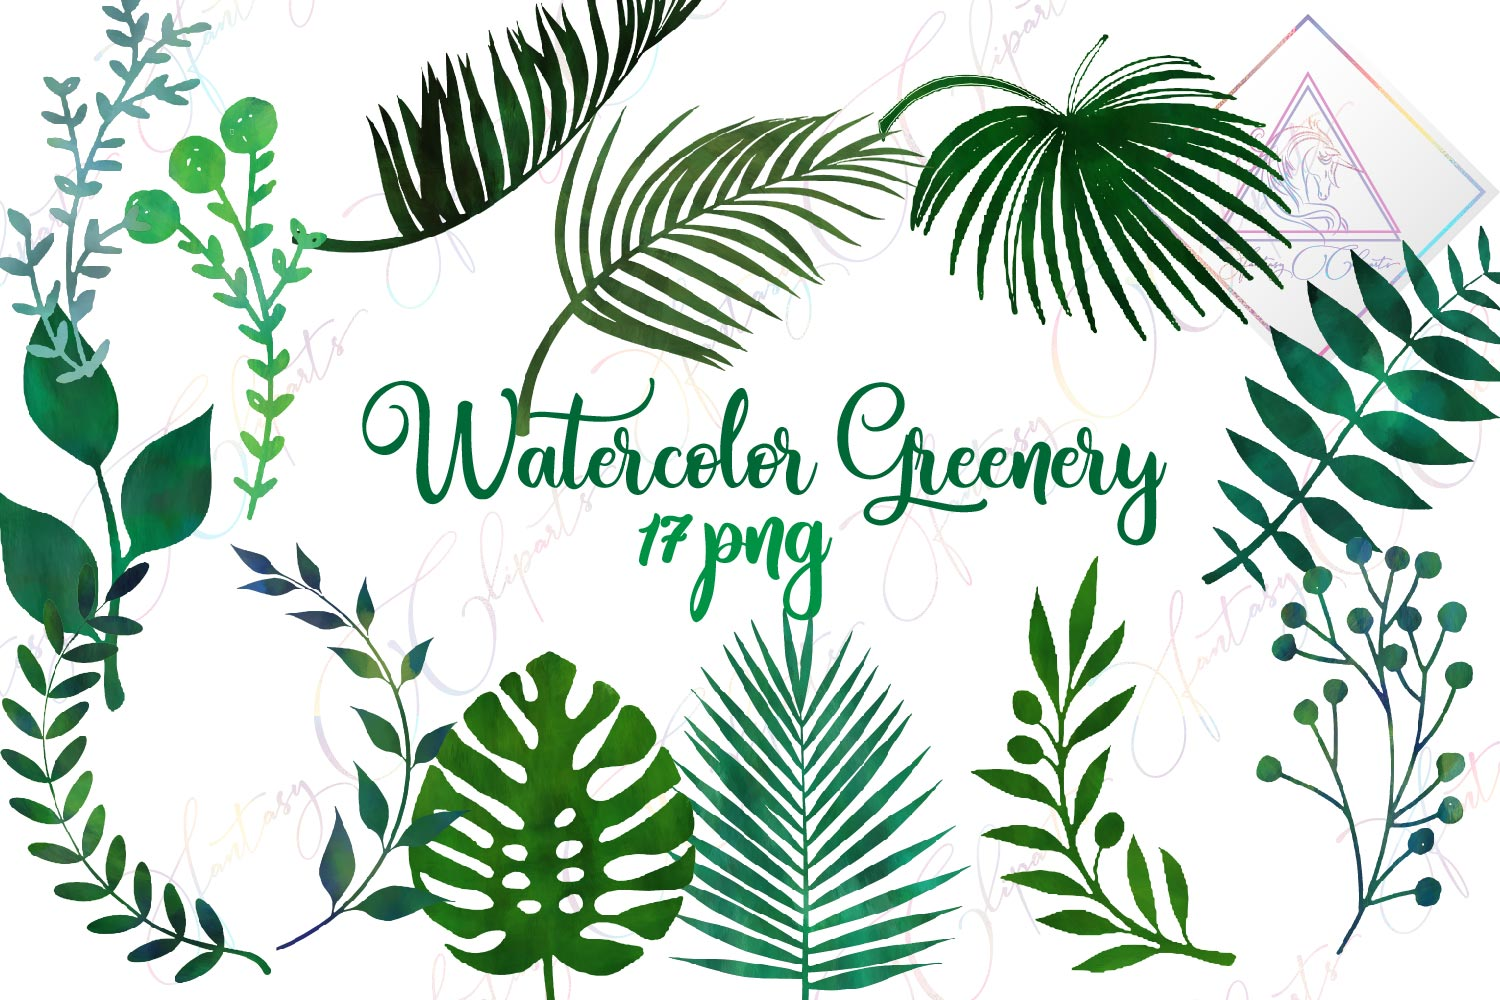 Watercolor Greenery Clipart example image 1